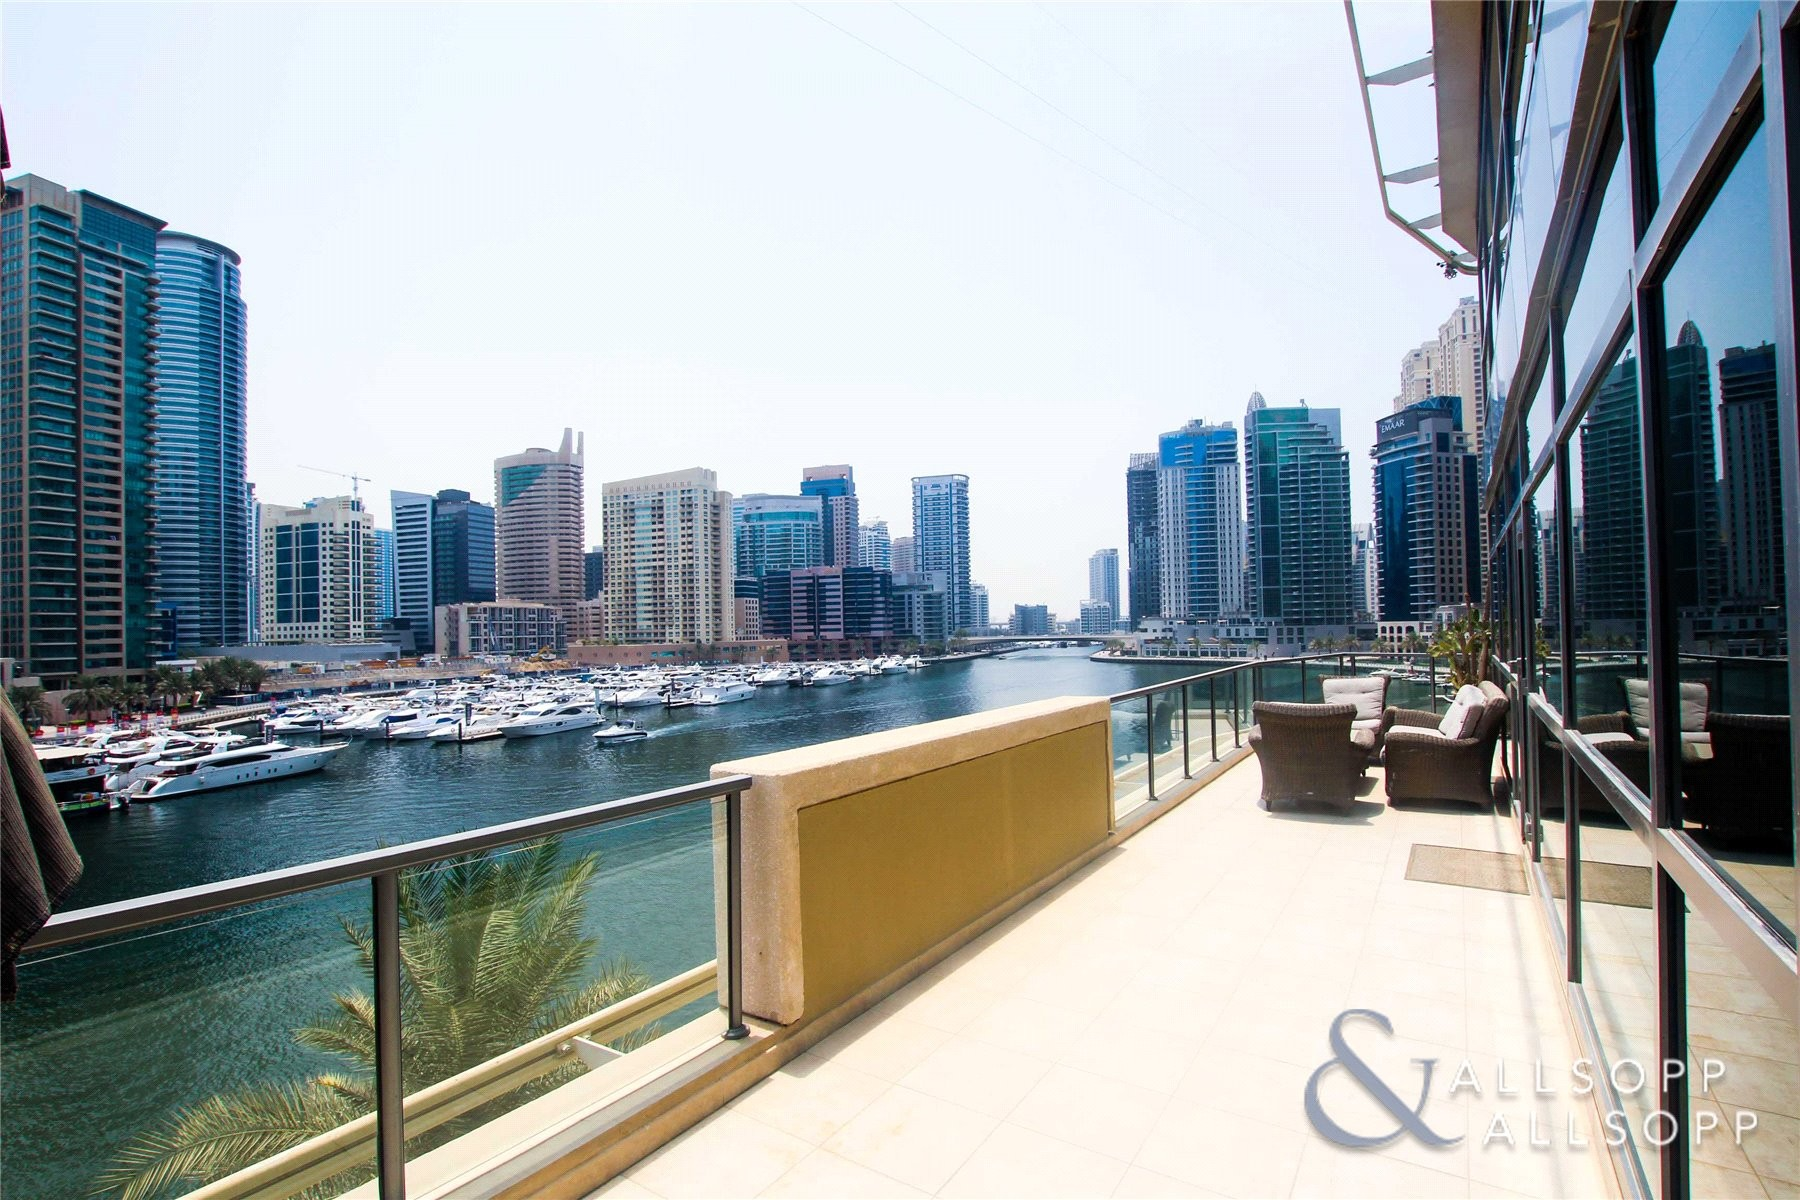 3 Beds | Large Balcony | Full Marina View